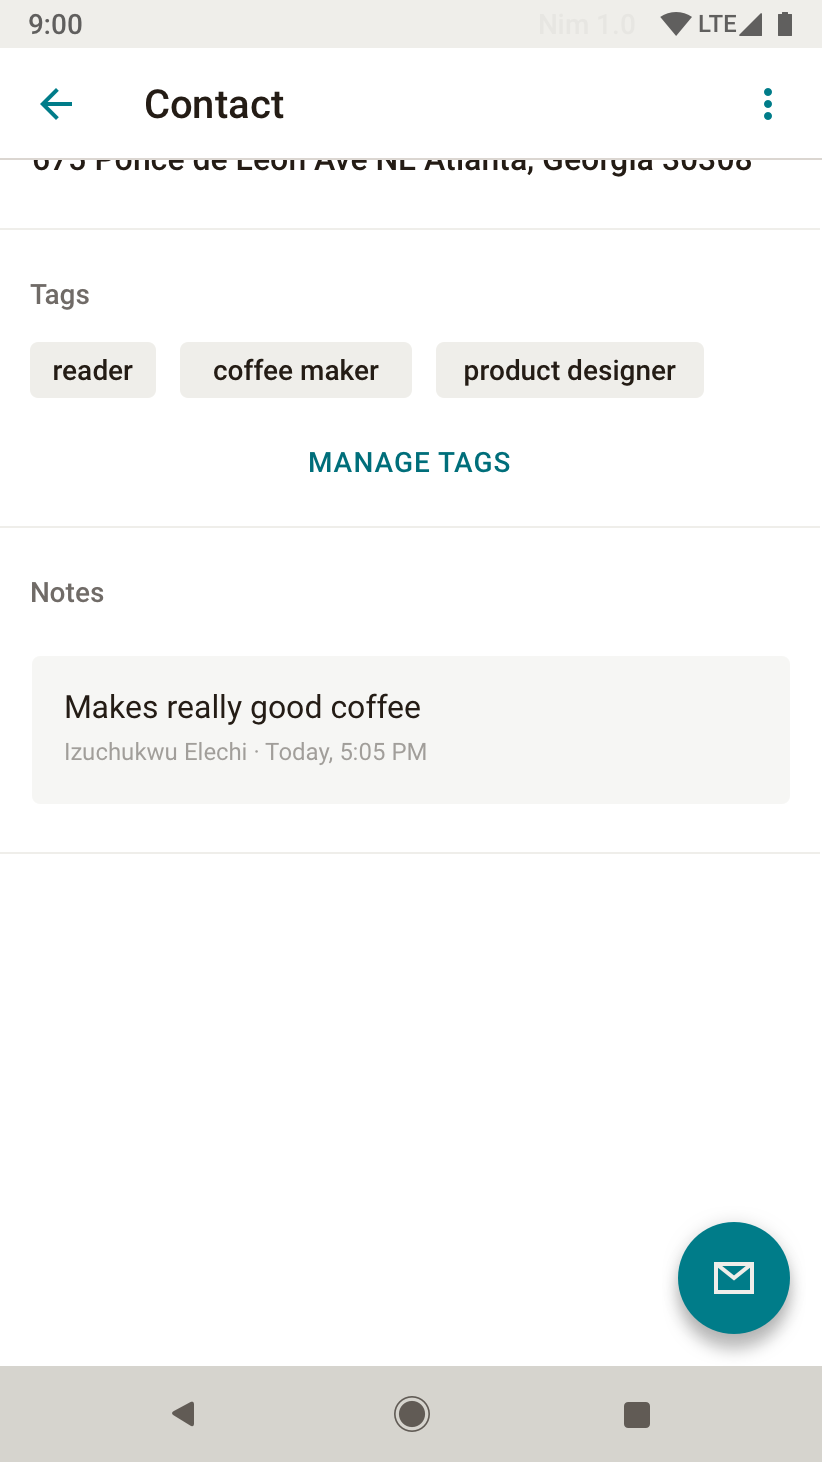 User can manage Contact tags or view notes (originate on Web).